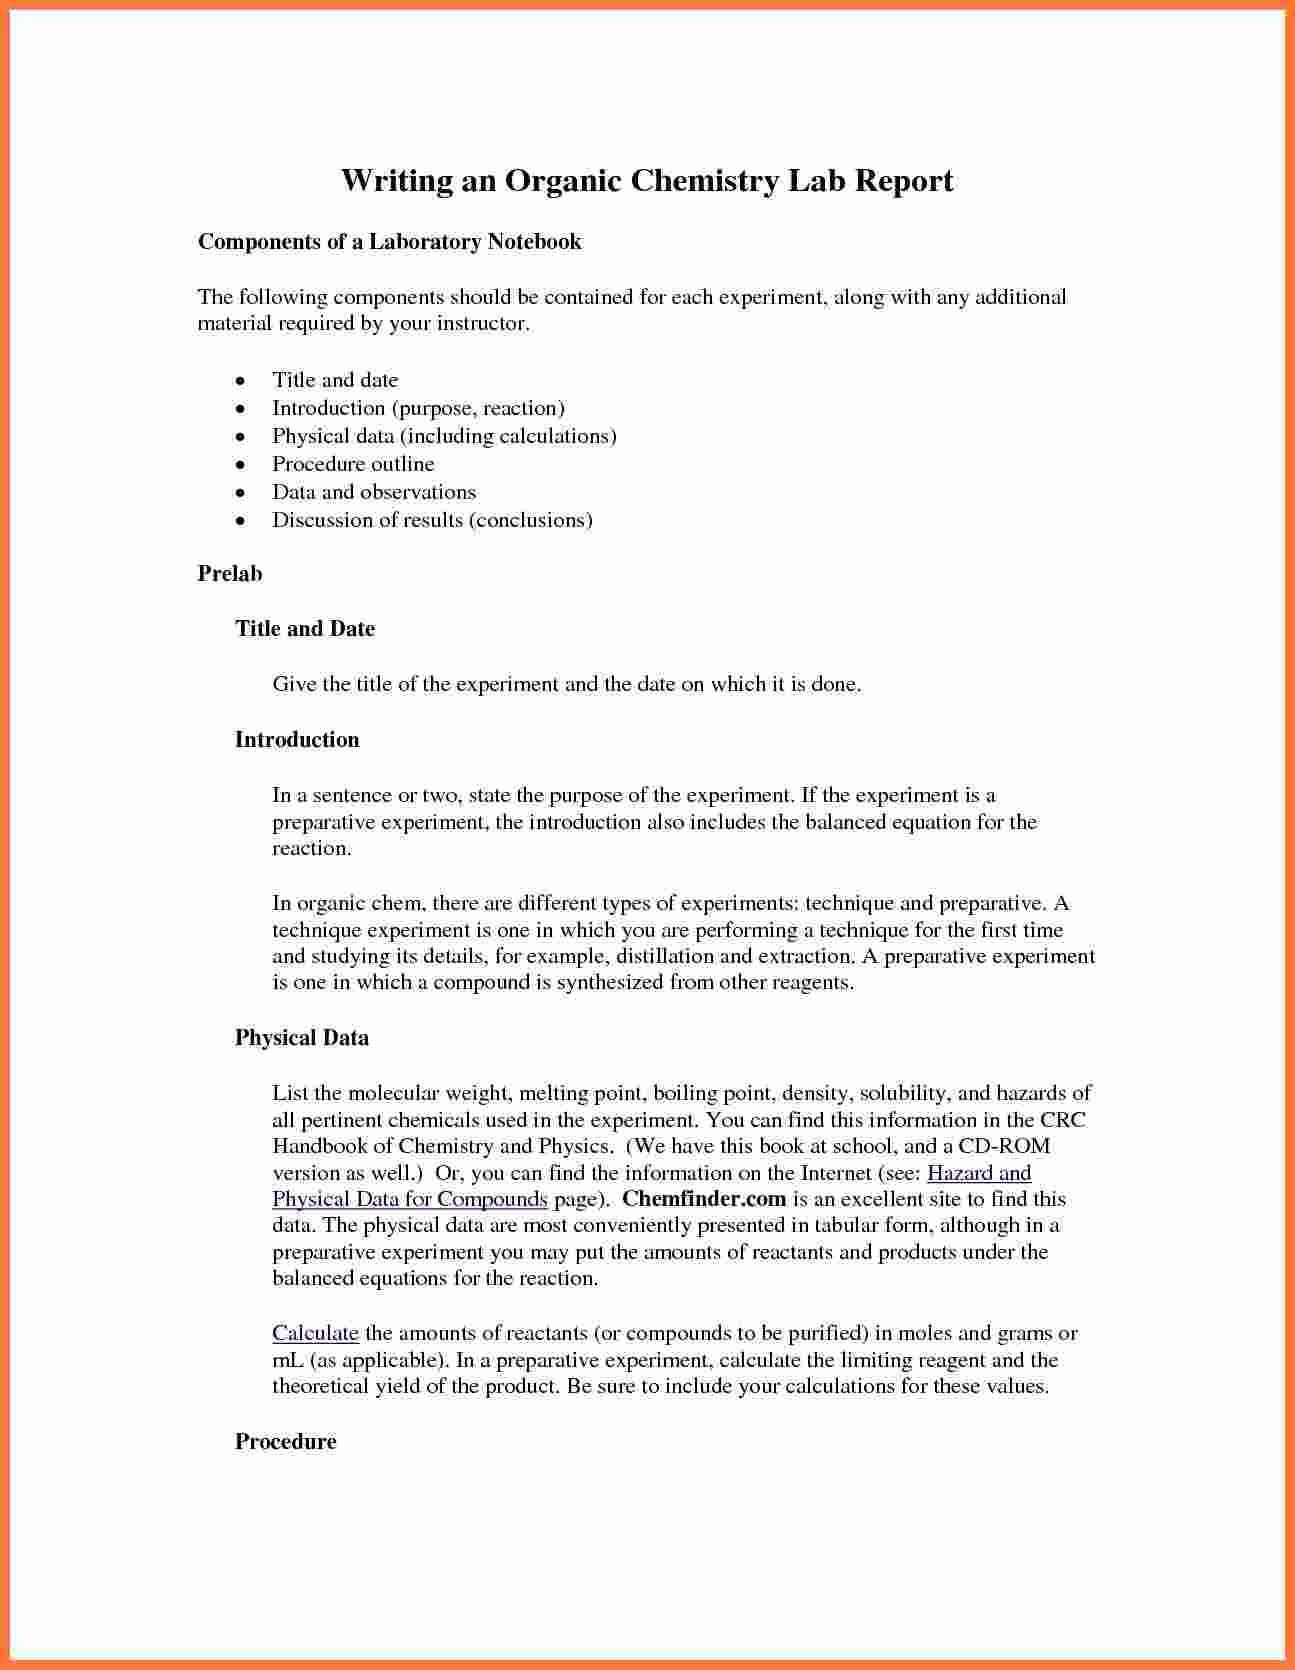 003 Organic Chemistry Lab Report Example Also Ibmistry Pertaining To Lab Report Template Word